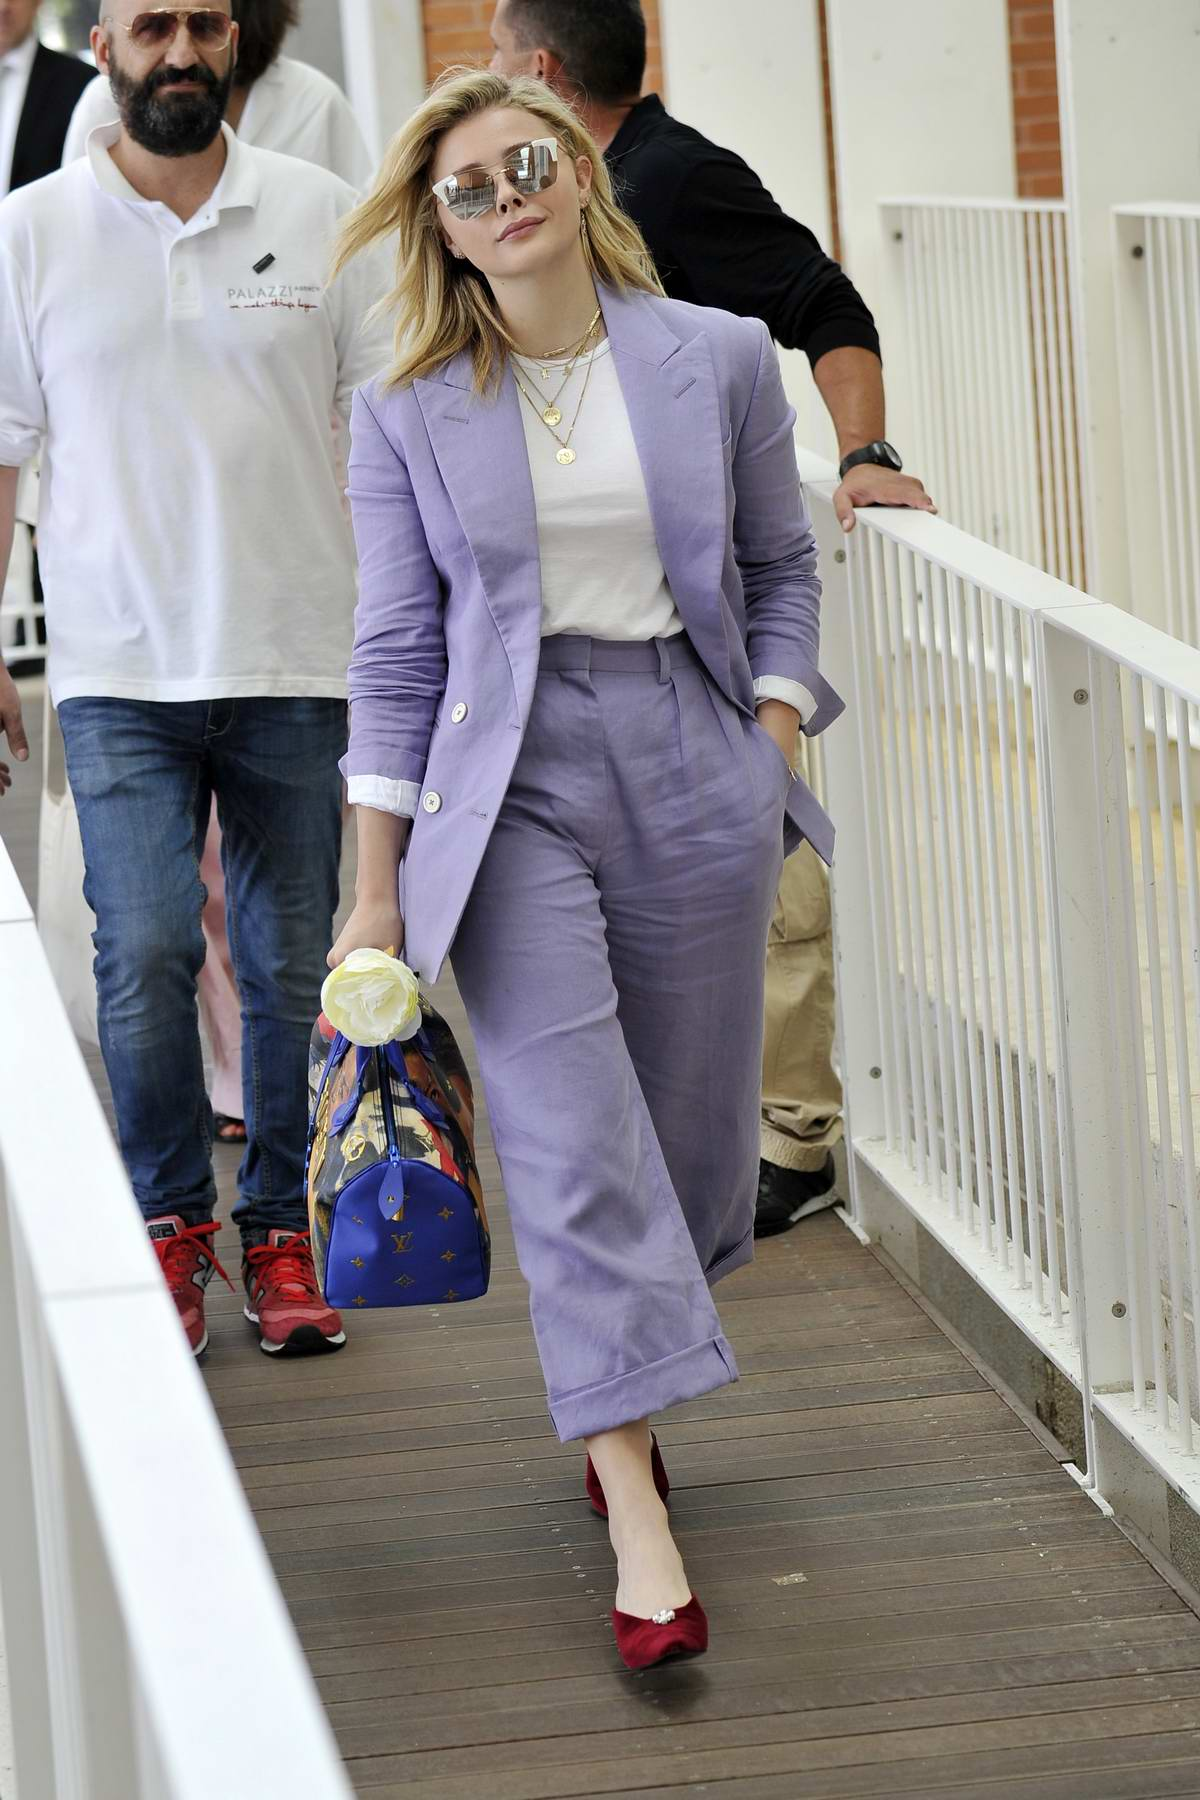 Chloe Grace Moretz wears a purple pantsuit while out during 75th Venice Film Festival in Venice, Italy